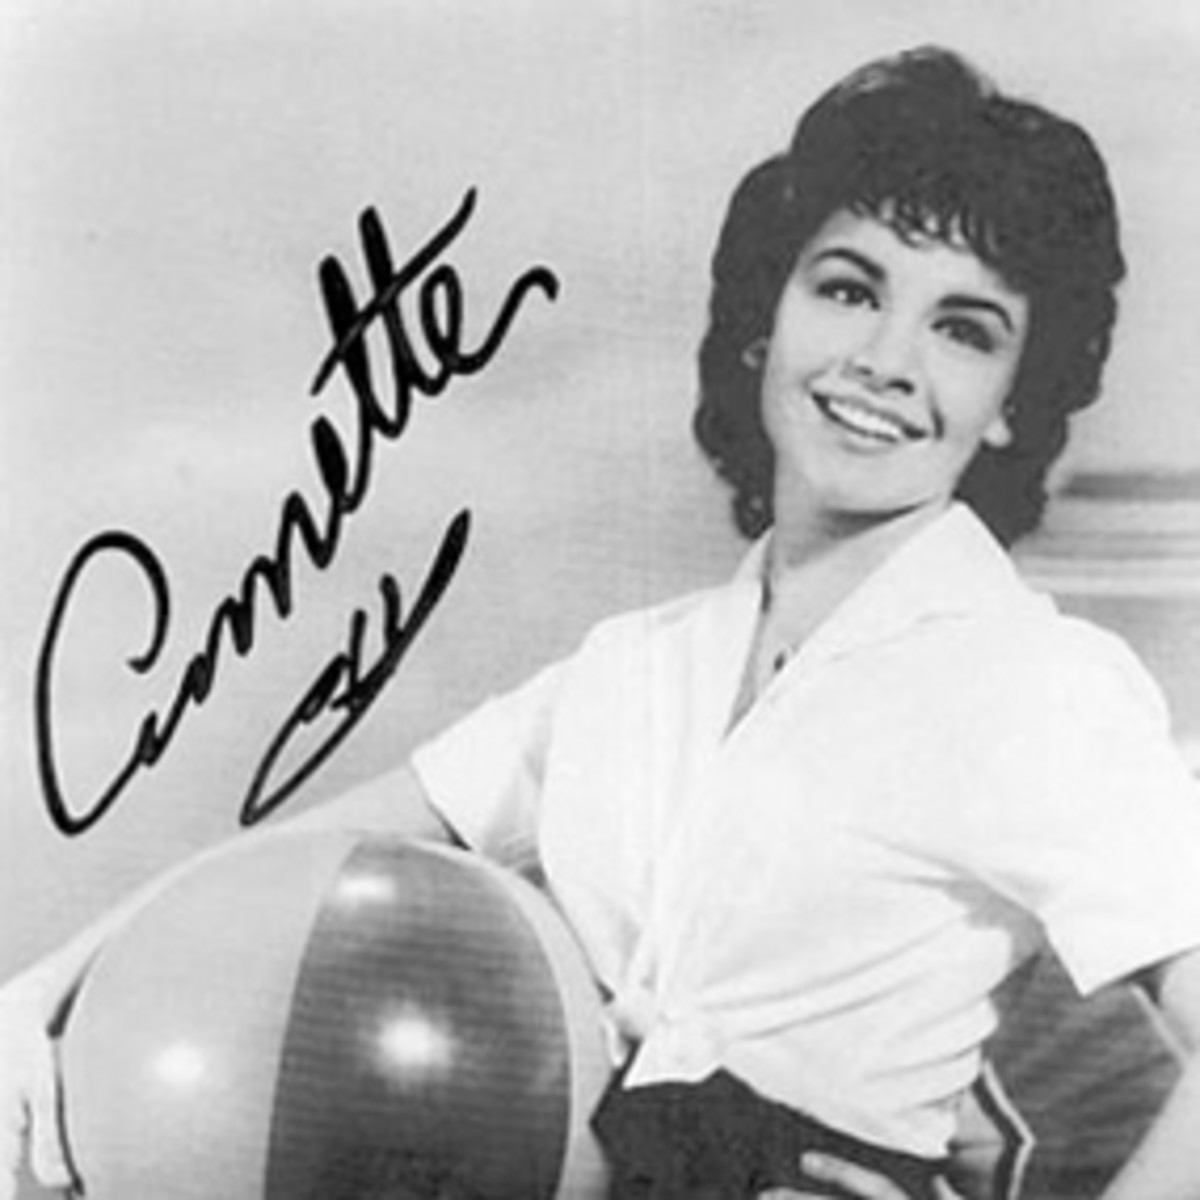 Annette Funicello - (born October 22, 1942) Annette is an American singer and actress. She was Walt Disney's most popular Mouseketeer, and went on to appear in a series of beach movies. When she was cast in her first beach movie, Walt Disney himself